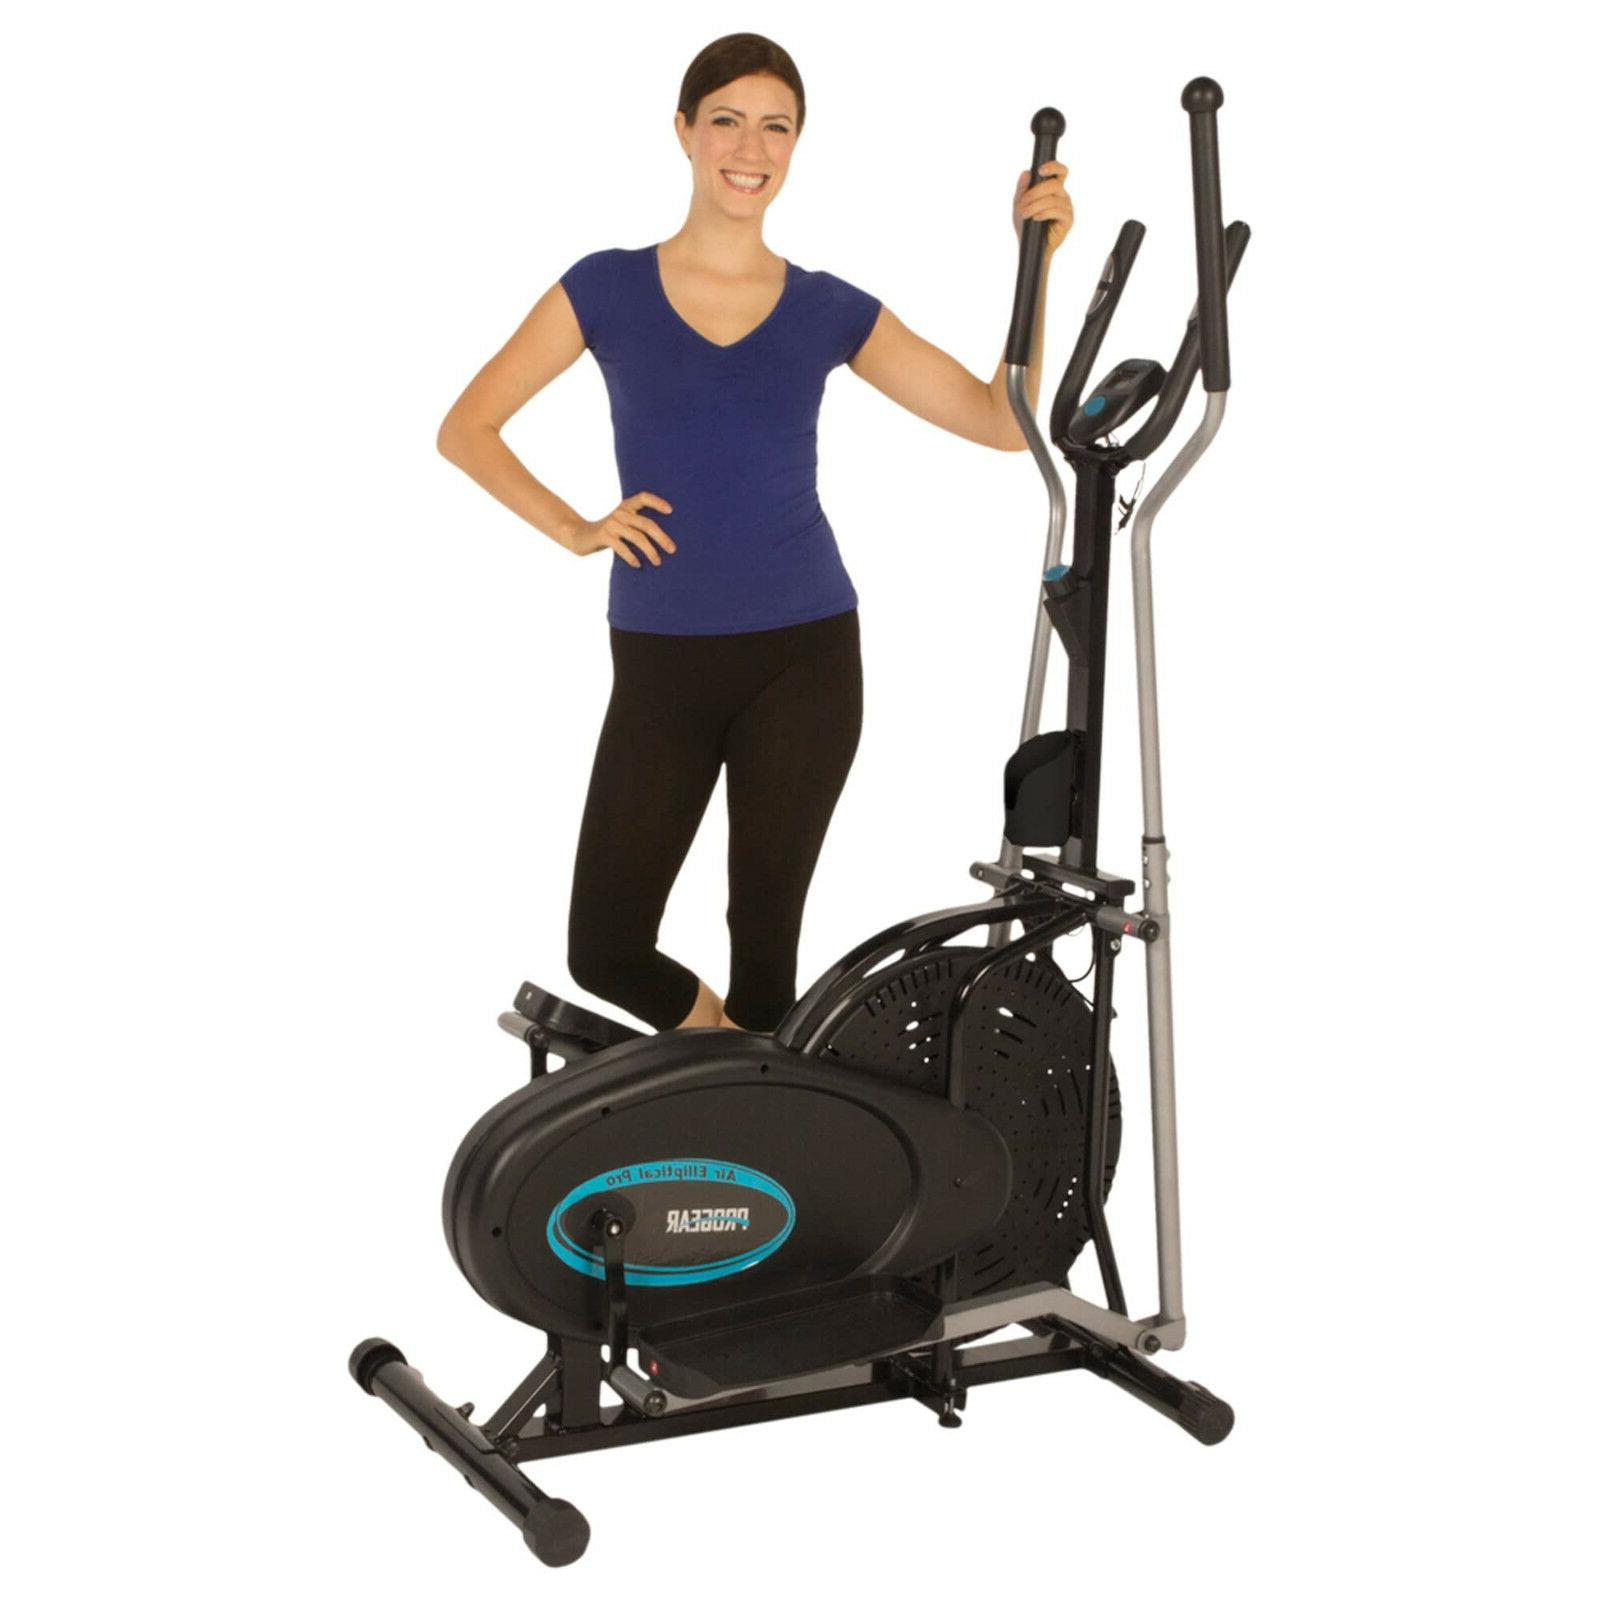 portable air elliptical with pulse sensors exercise